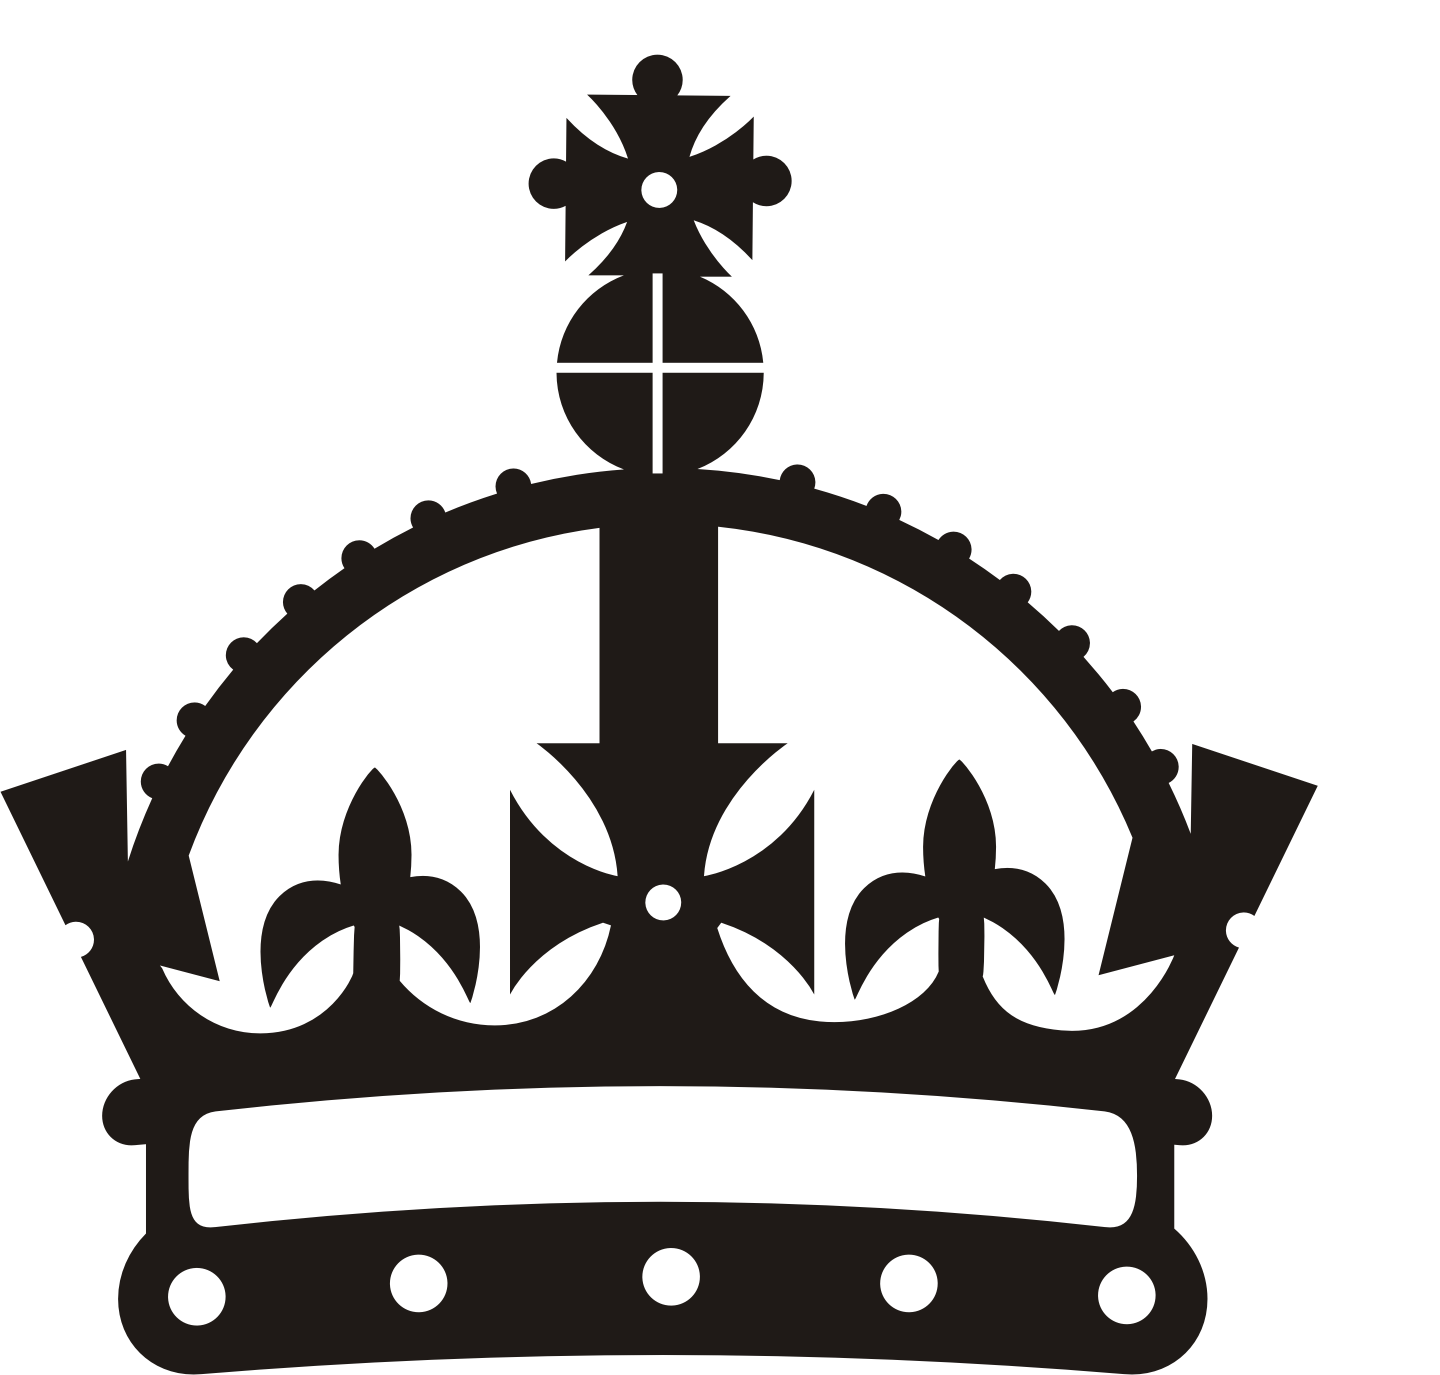 free vector clipart crown - photo #5